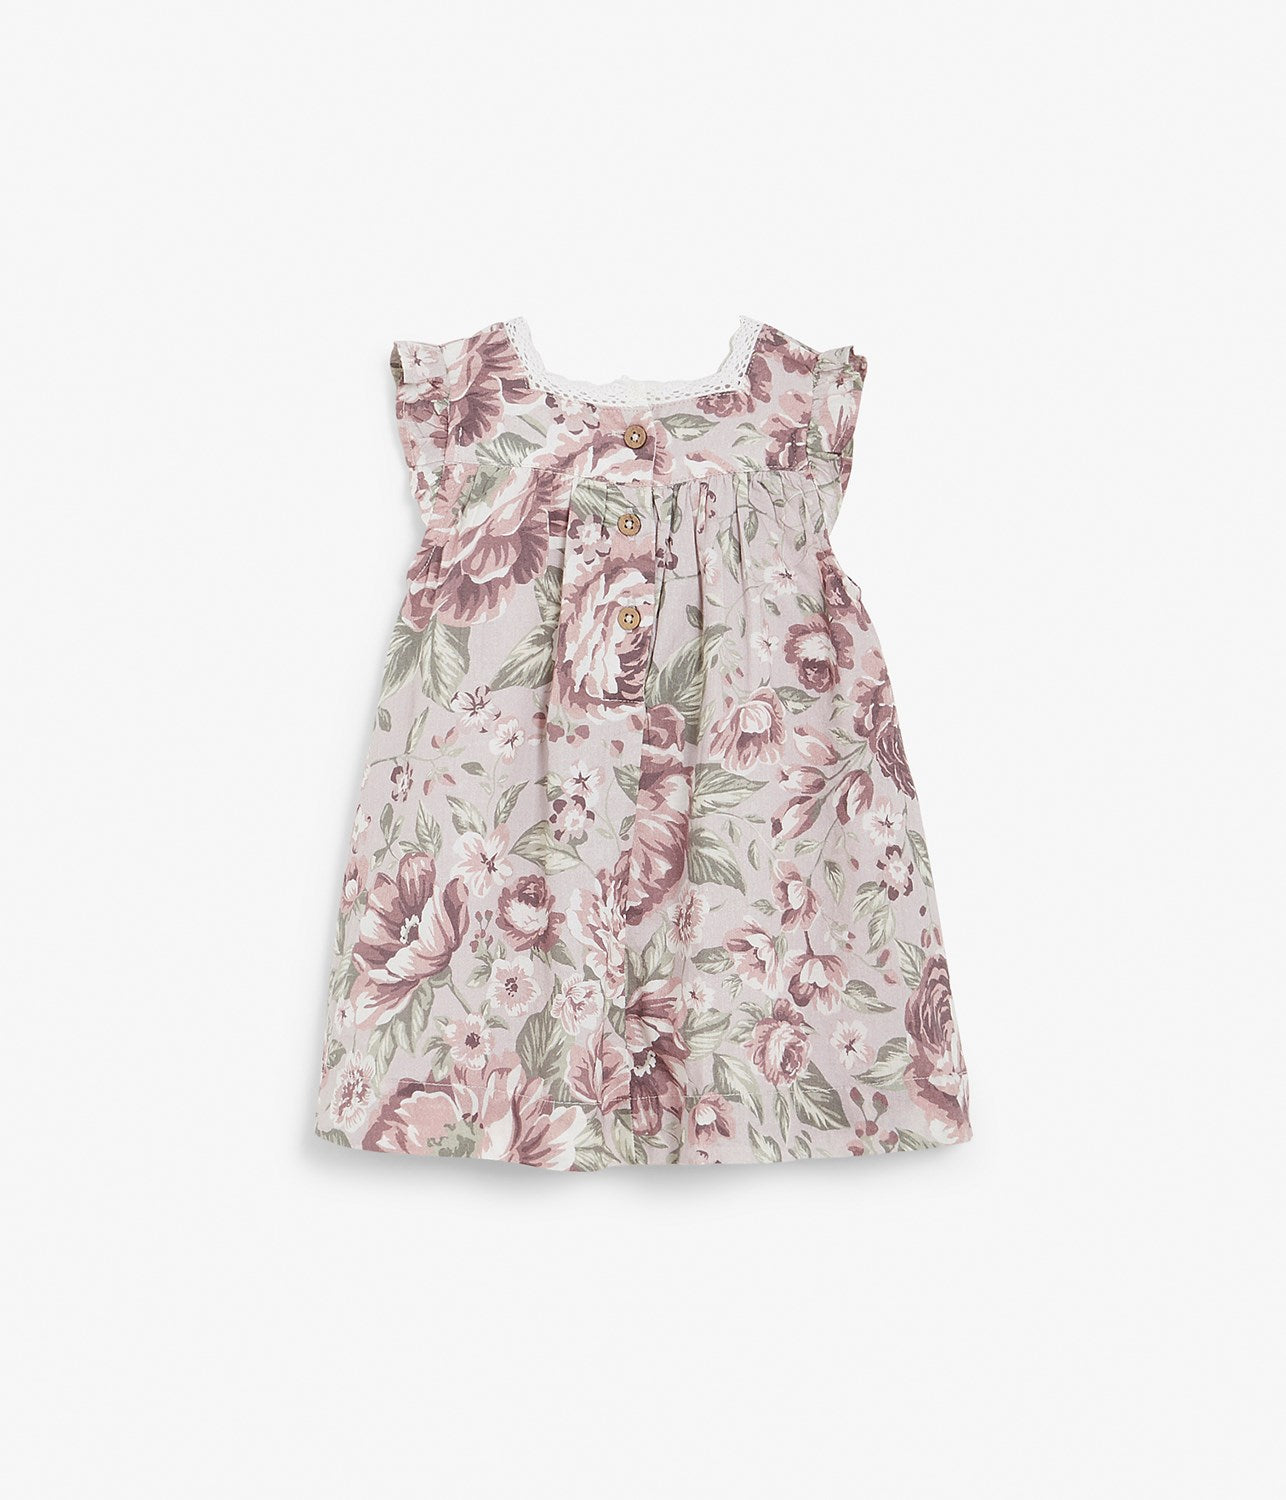 Baby floral print dress with lace